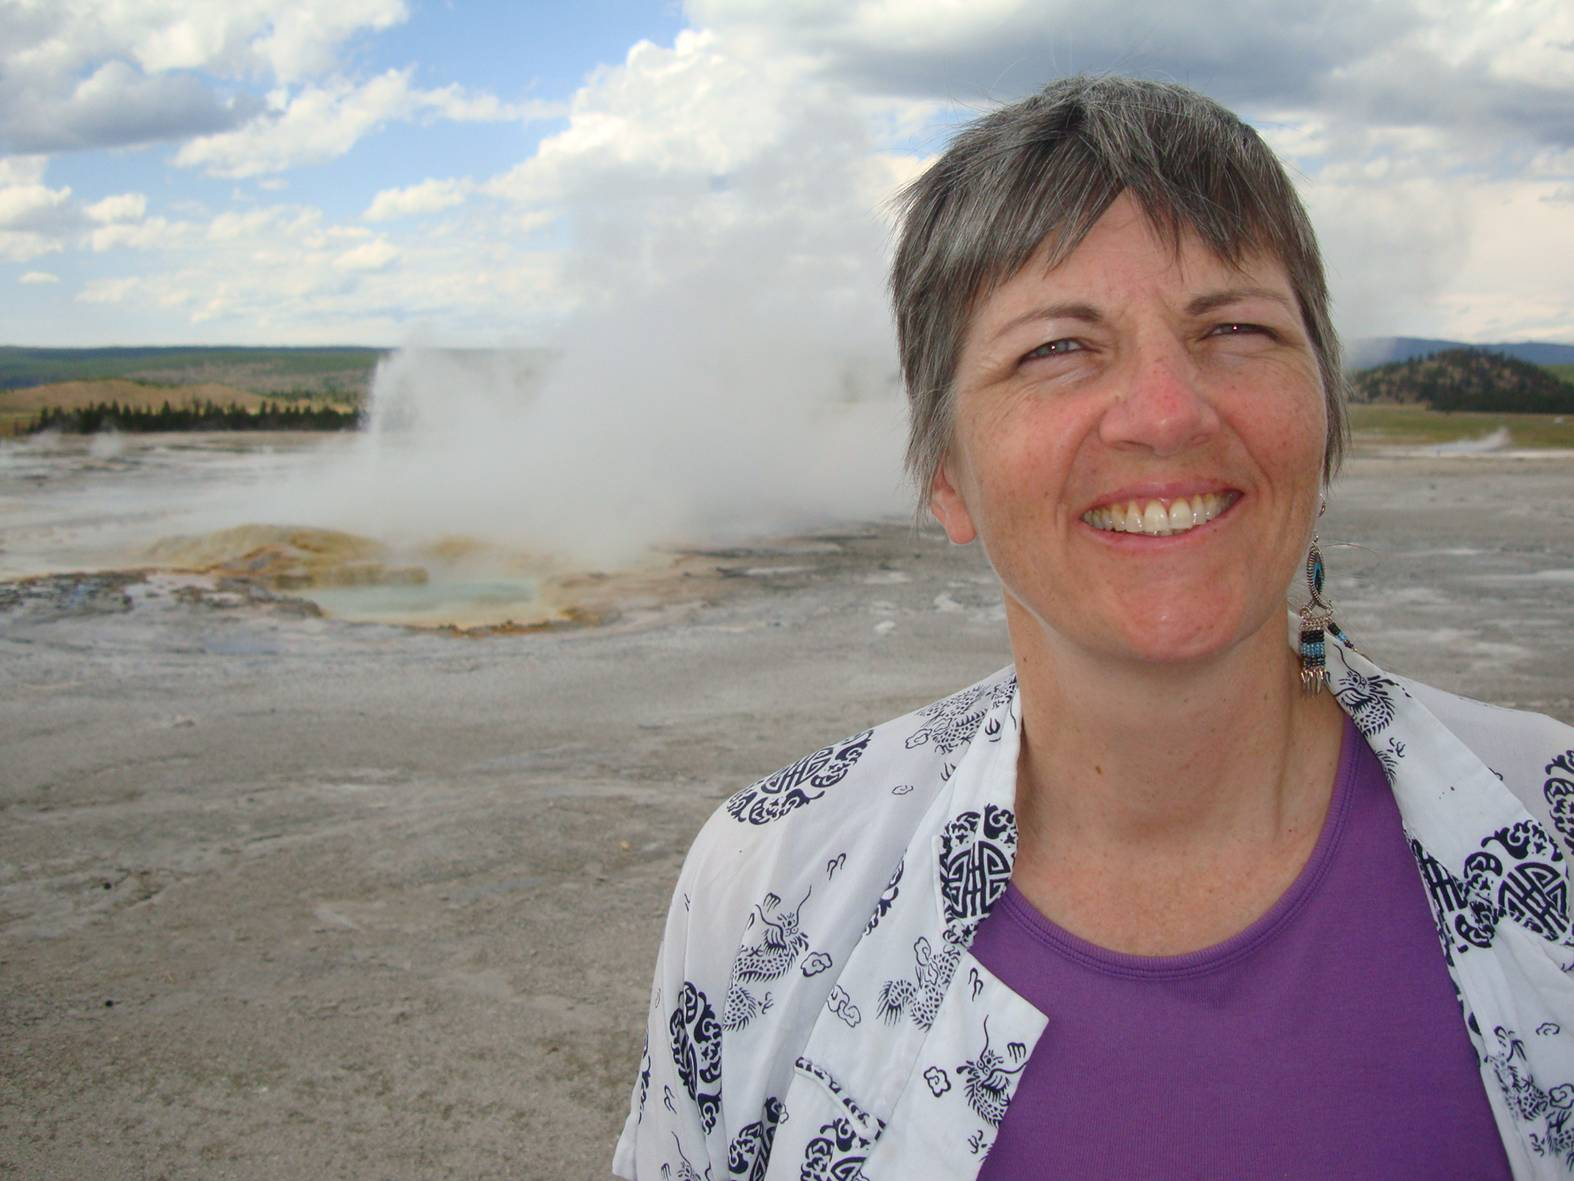 picture:  Ruth with a hot pool behind her.  Yellowstone Park